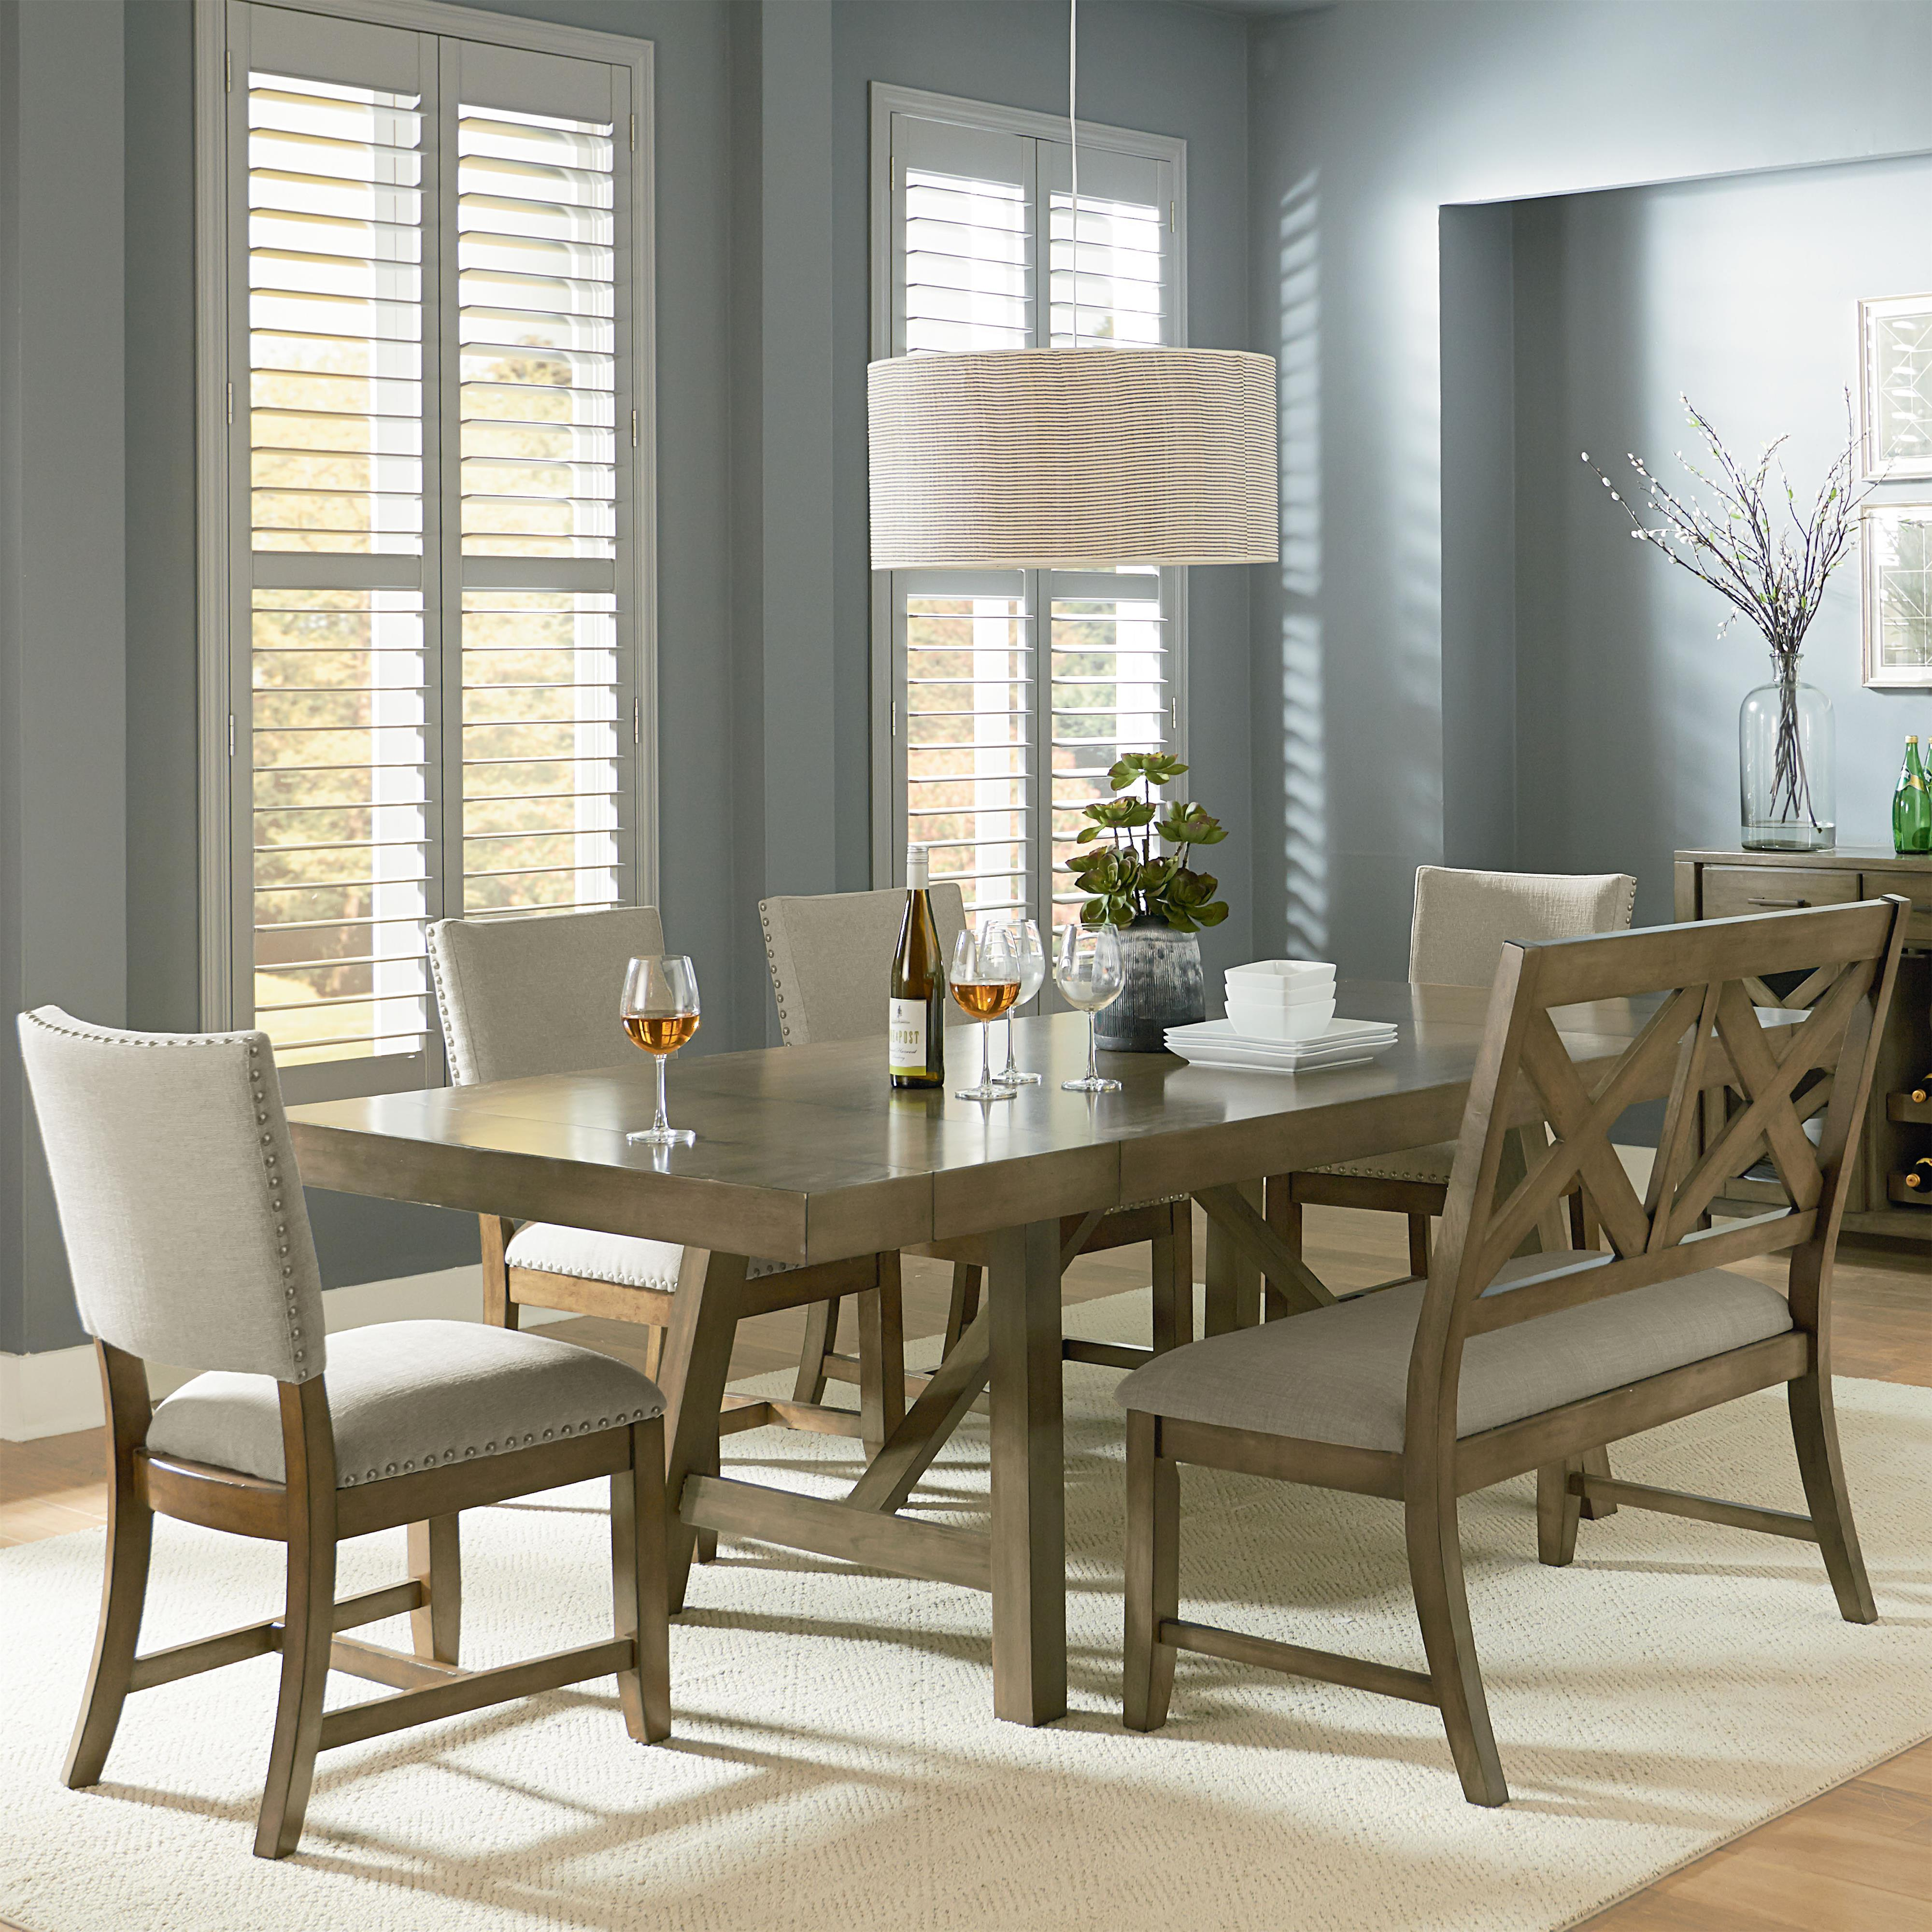 Dining Room Sets: 6 Piece Trestle Table Dining Set With Dining Bench By